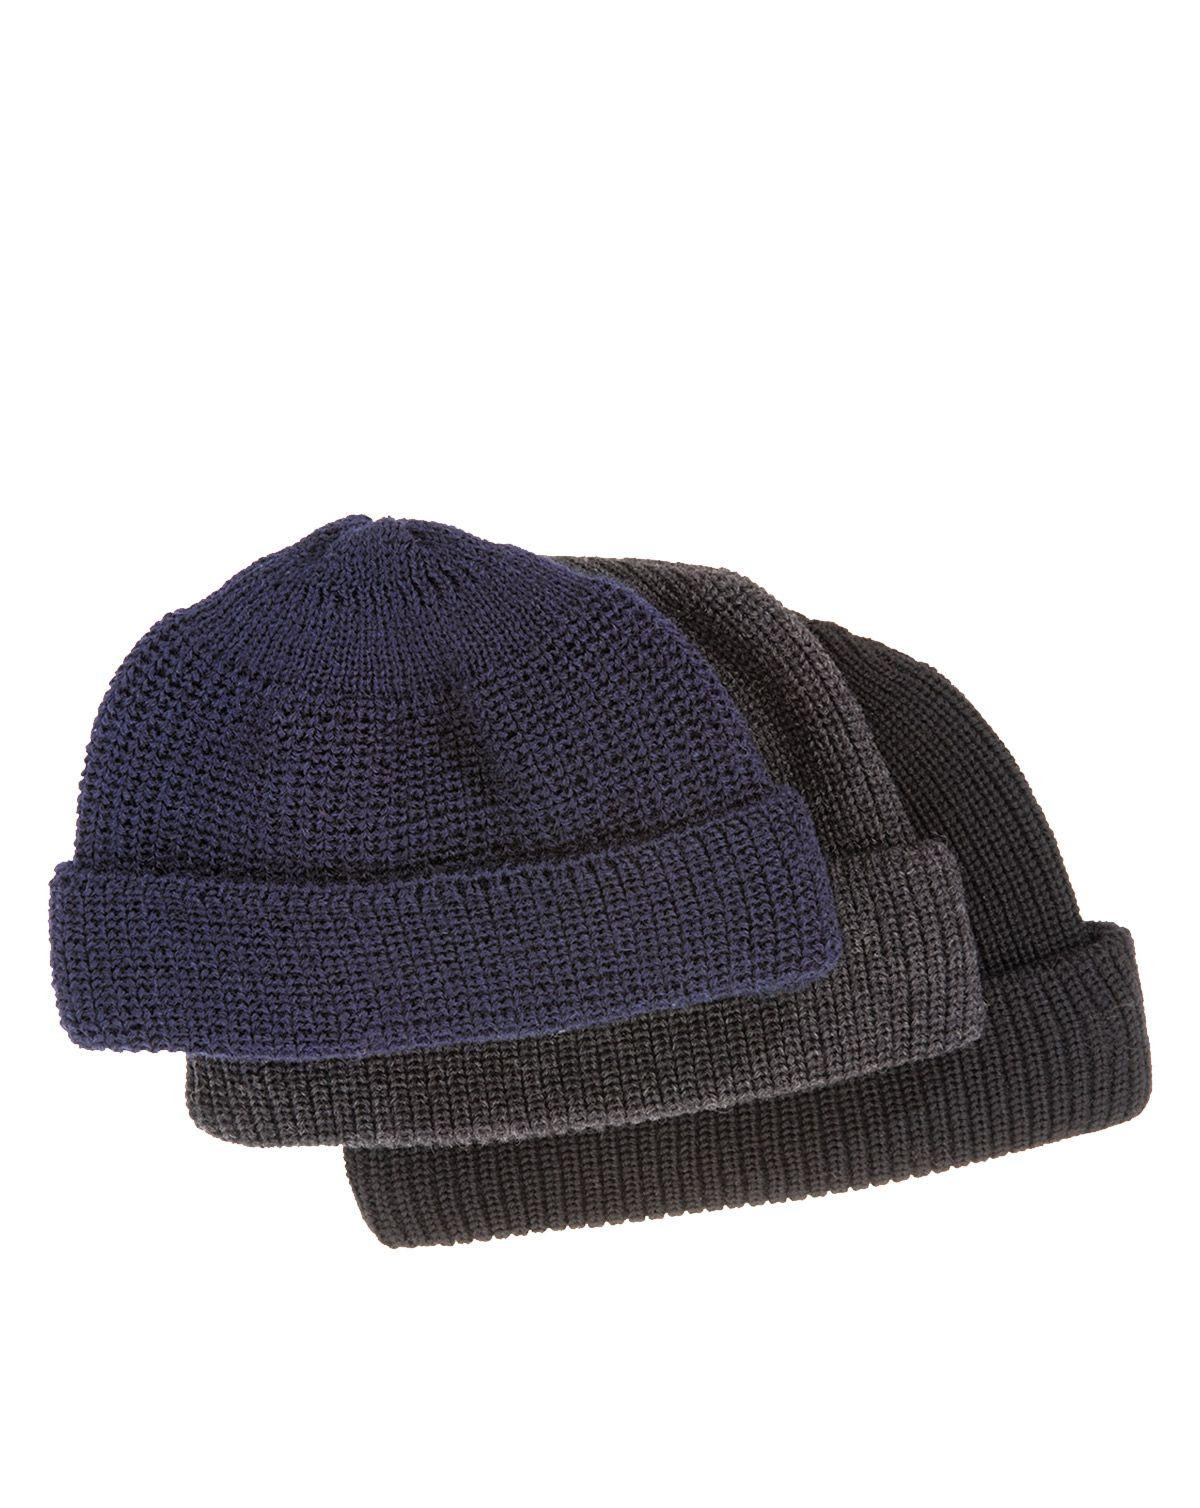 Image of   FHB Uld hat - Johann (Navy, One Size)